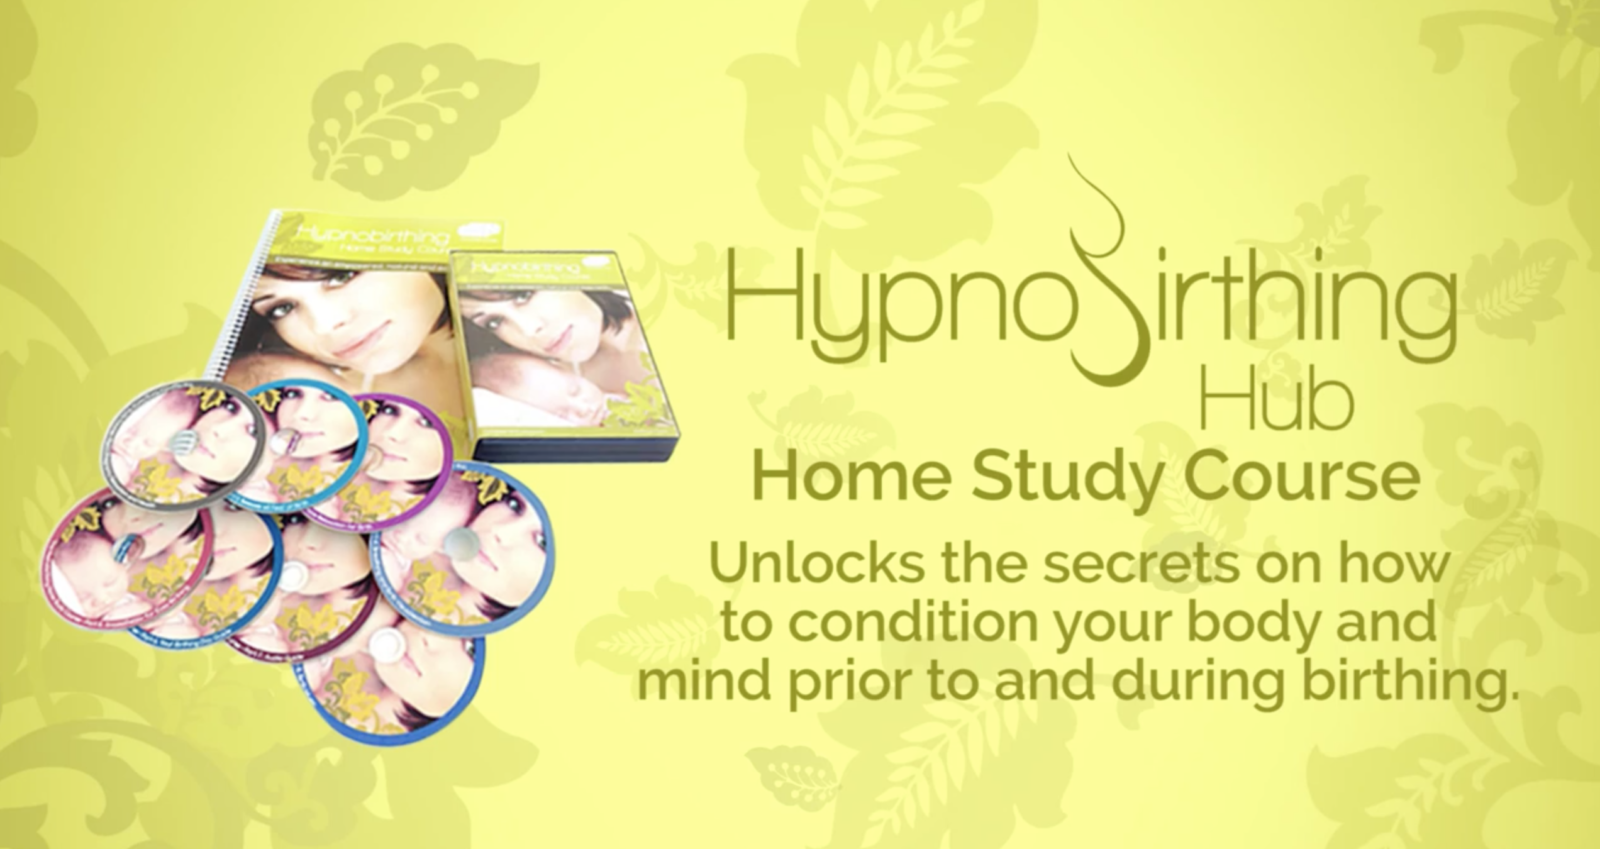 Hypnobirthing Hub Home Study Course